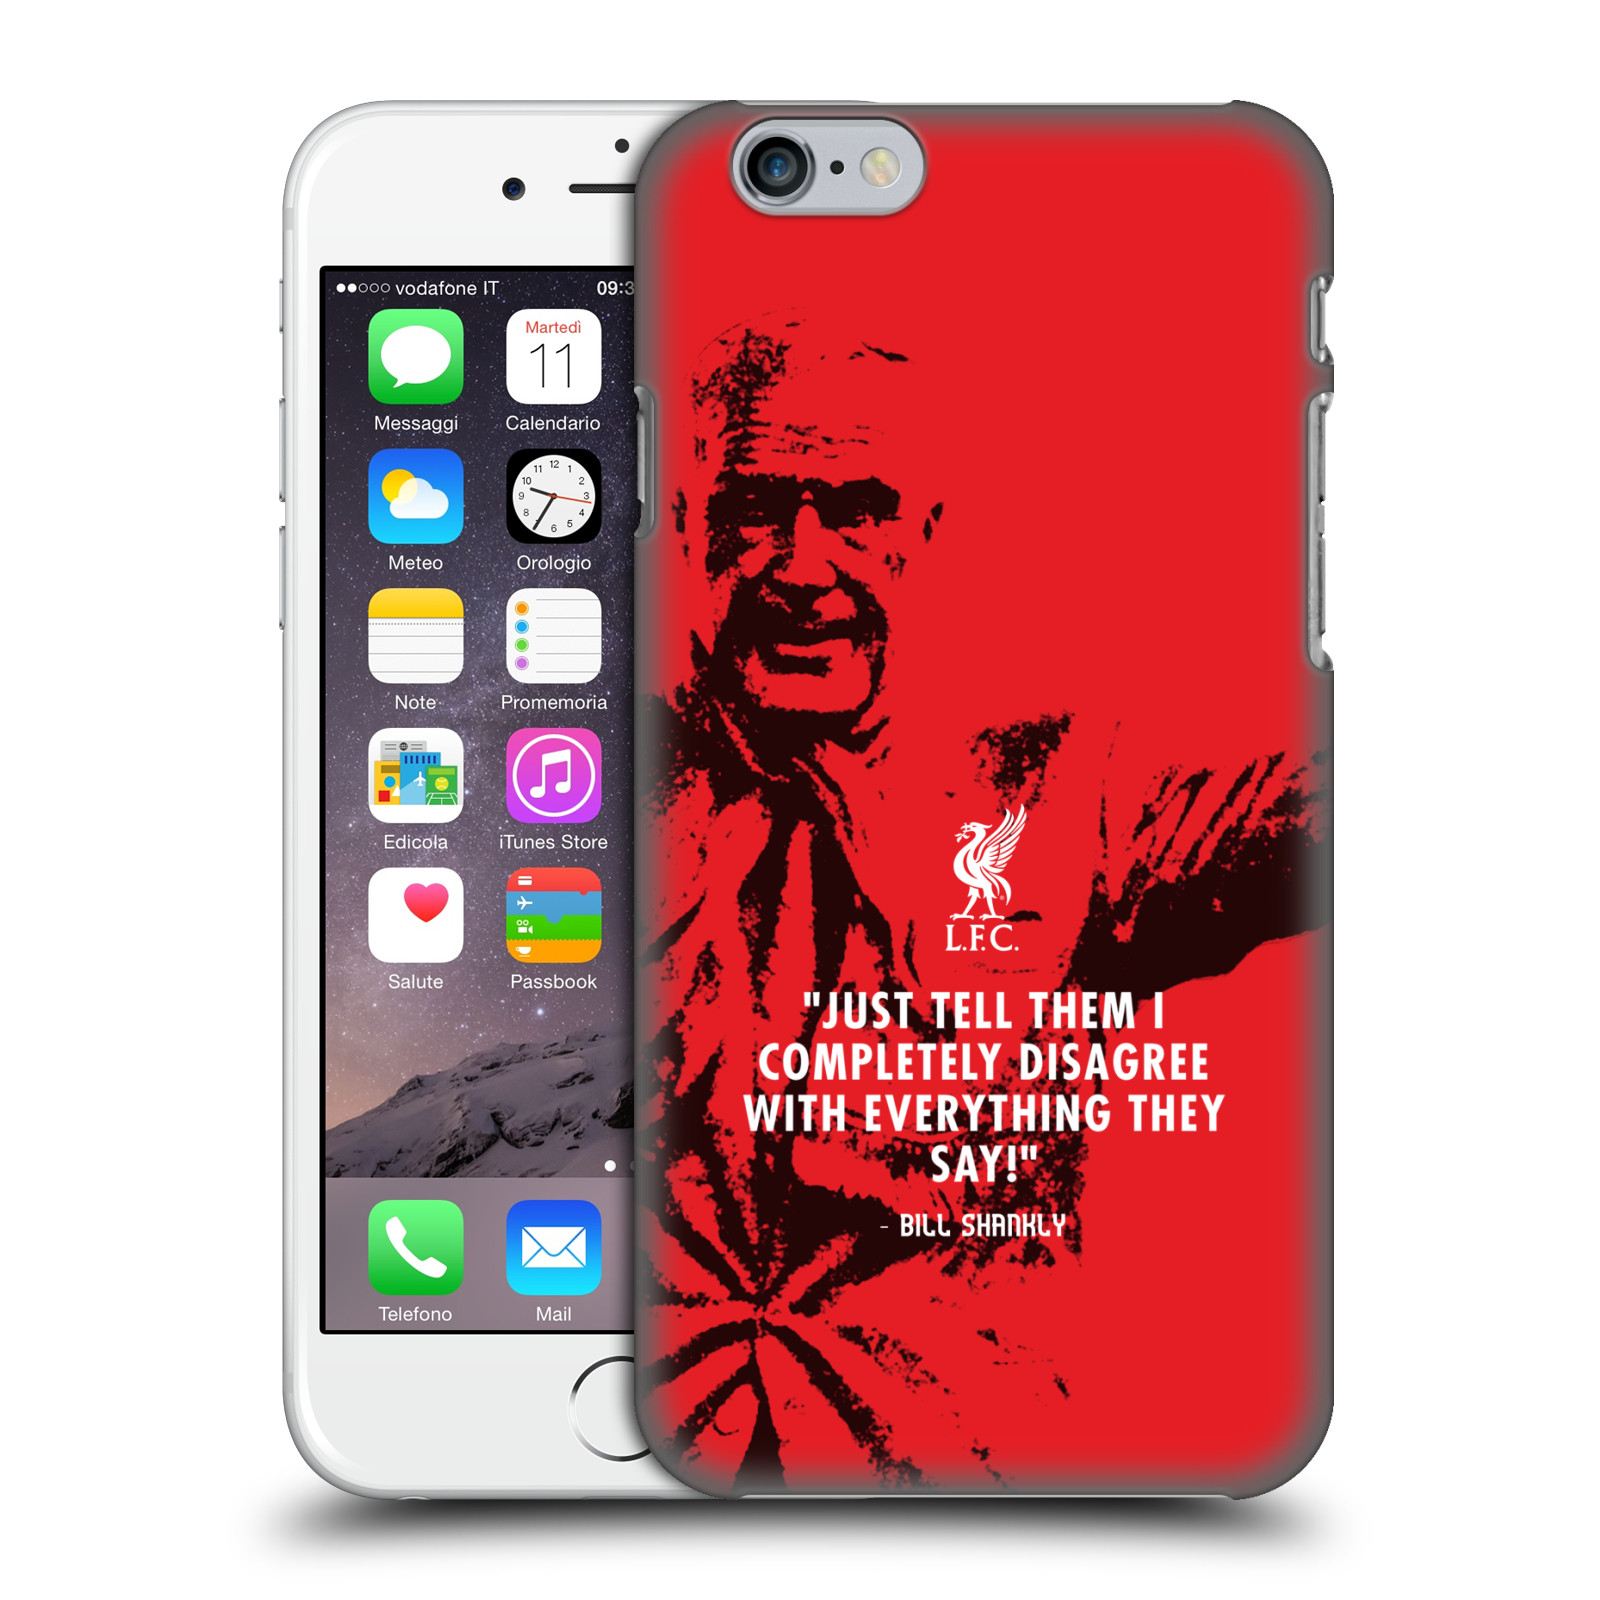 Liverpool FC LFC Bill Shankly Quotes-Disagree Red